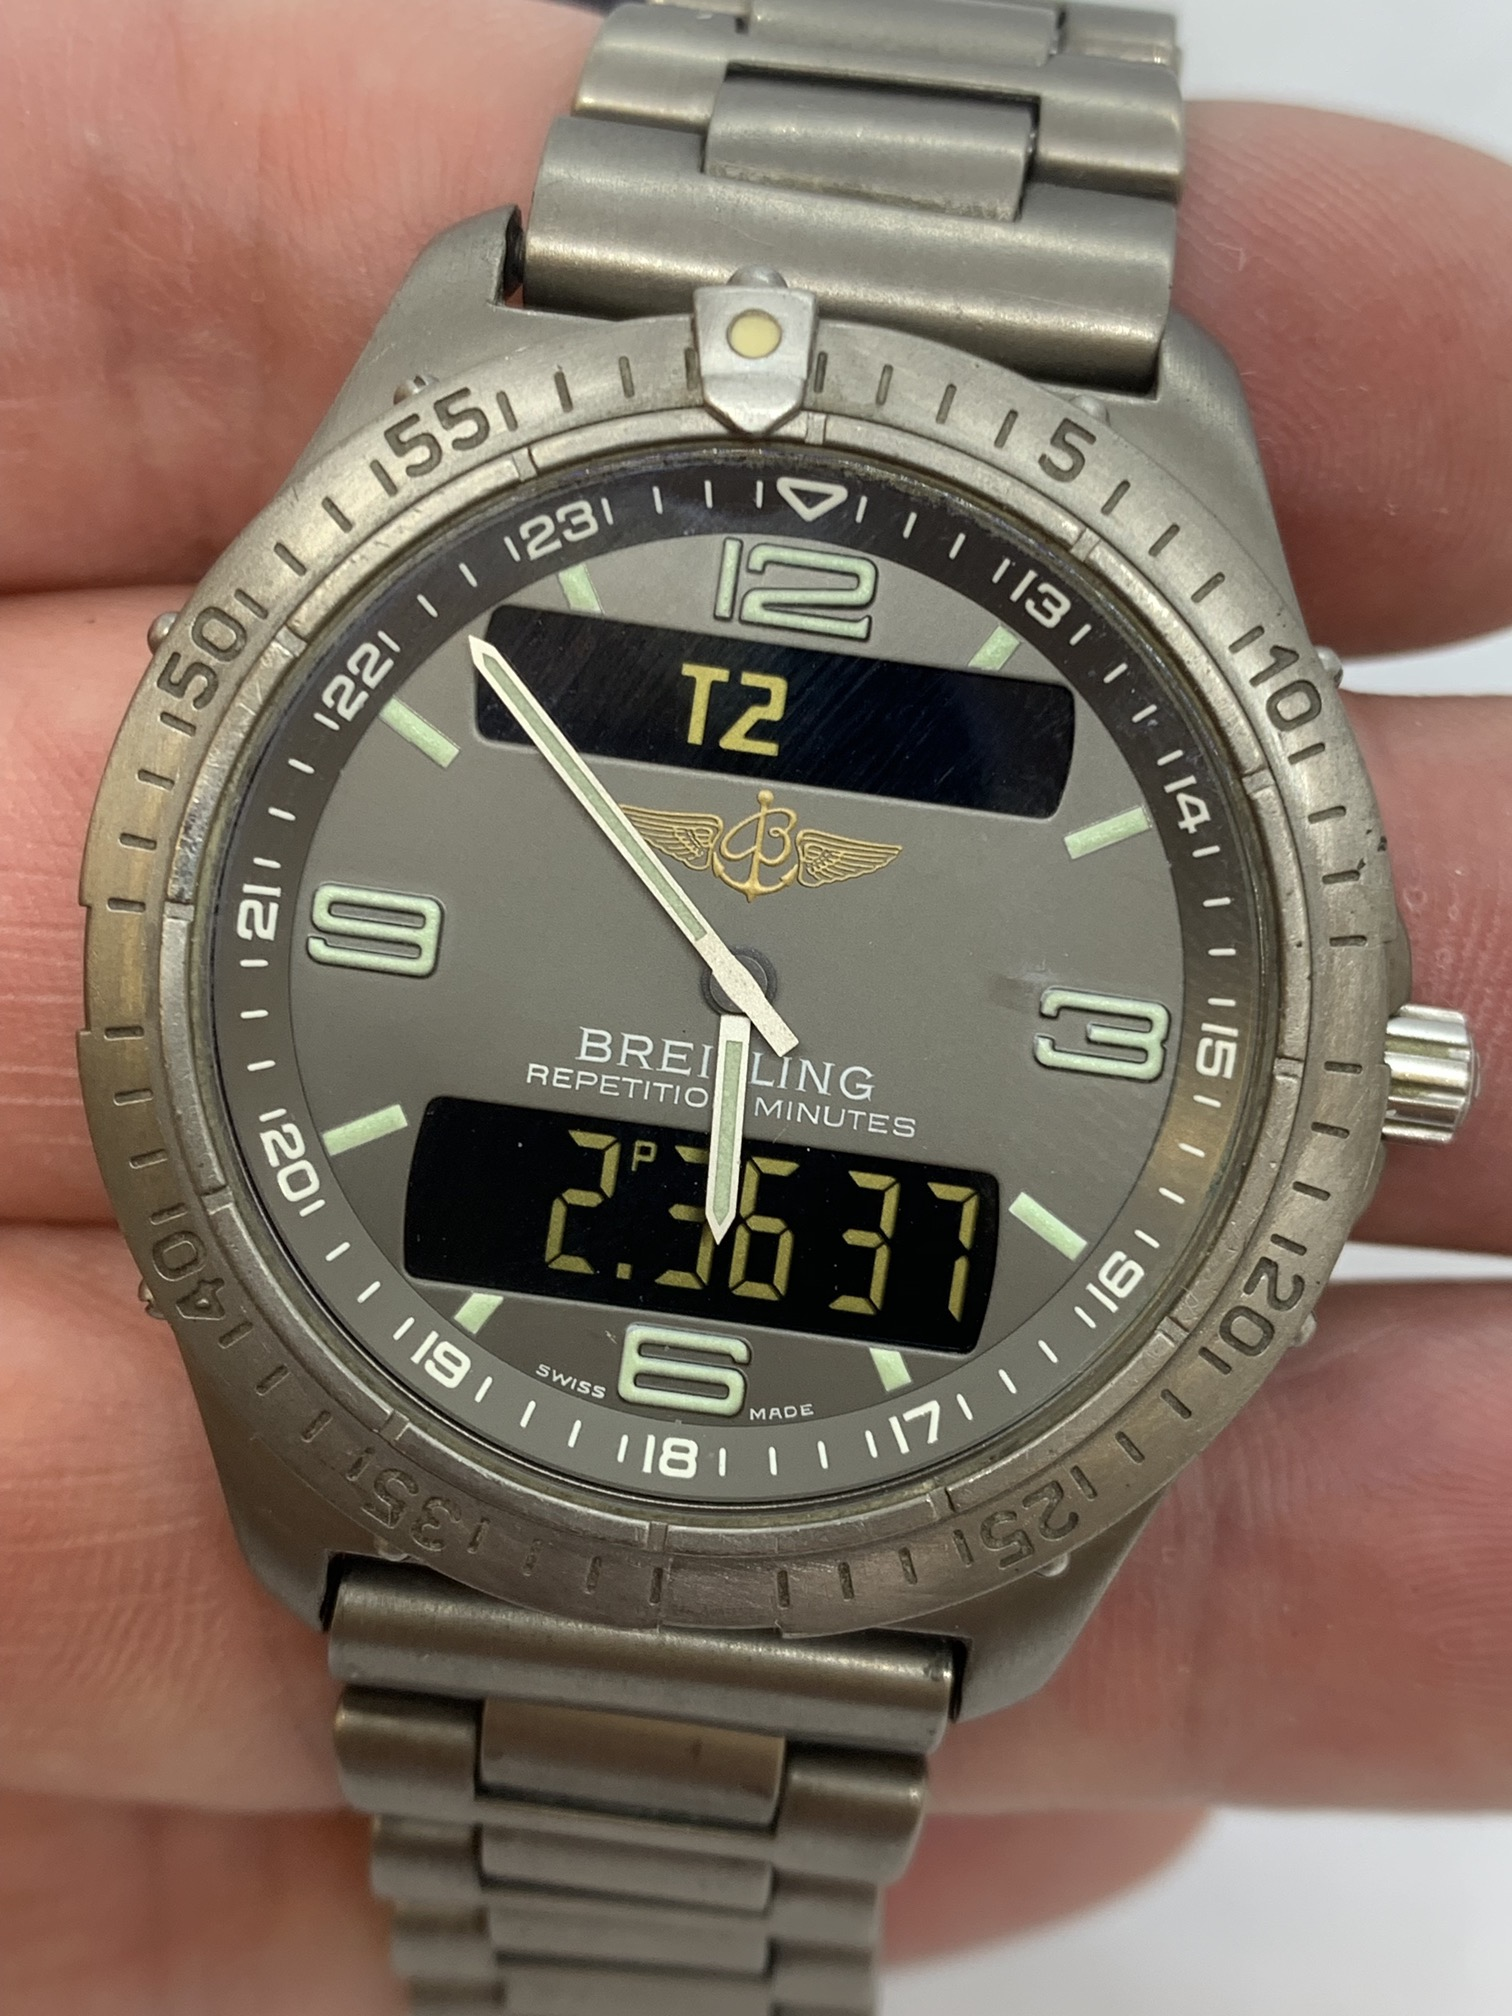 BREITLING TITANIUM WATCH A/F - Image 15 of 15